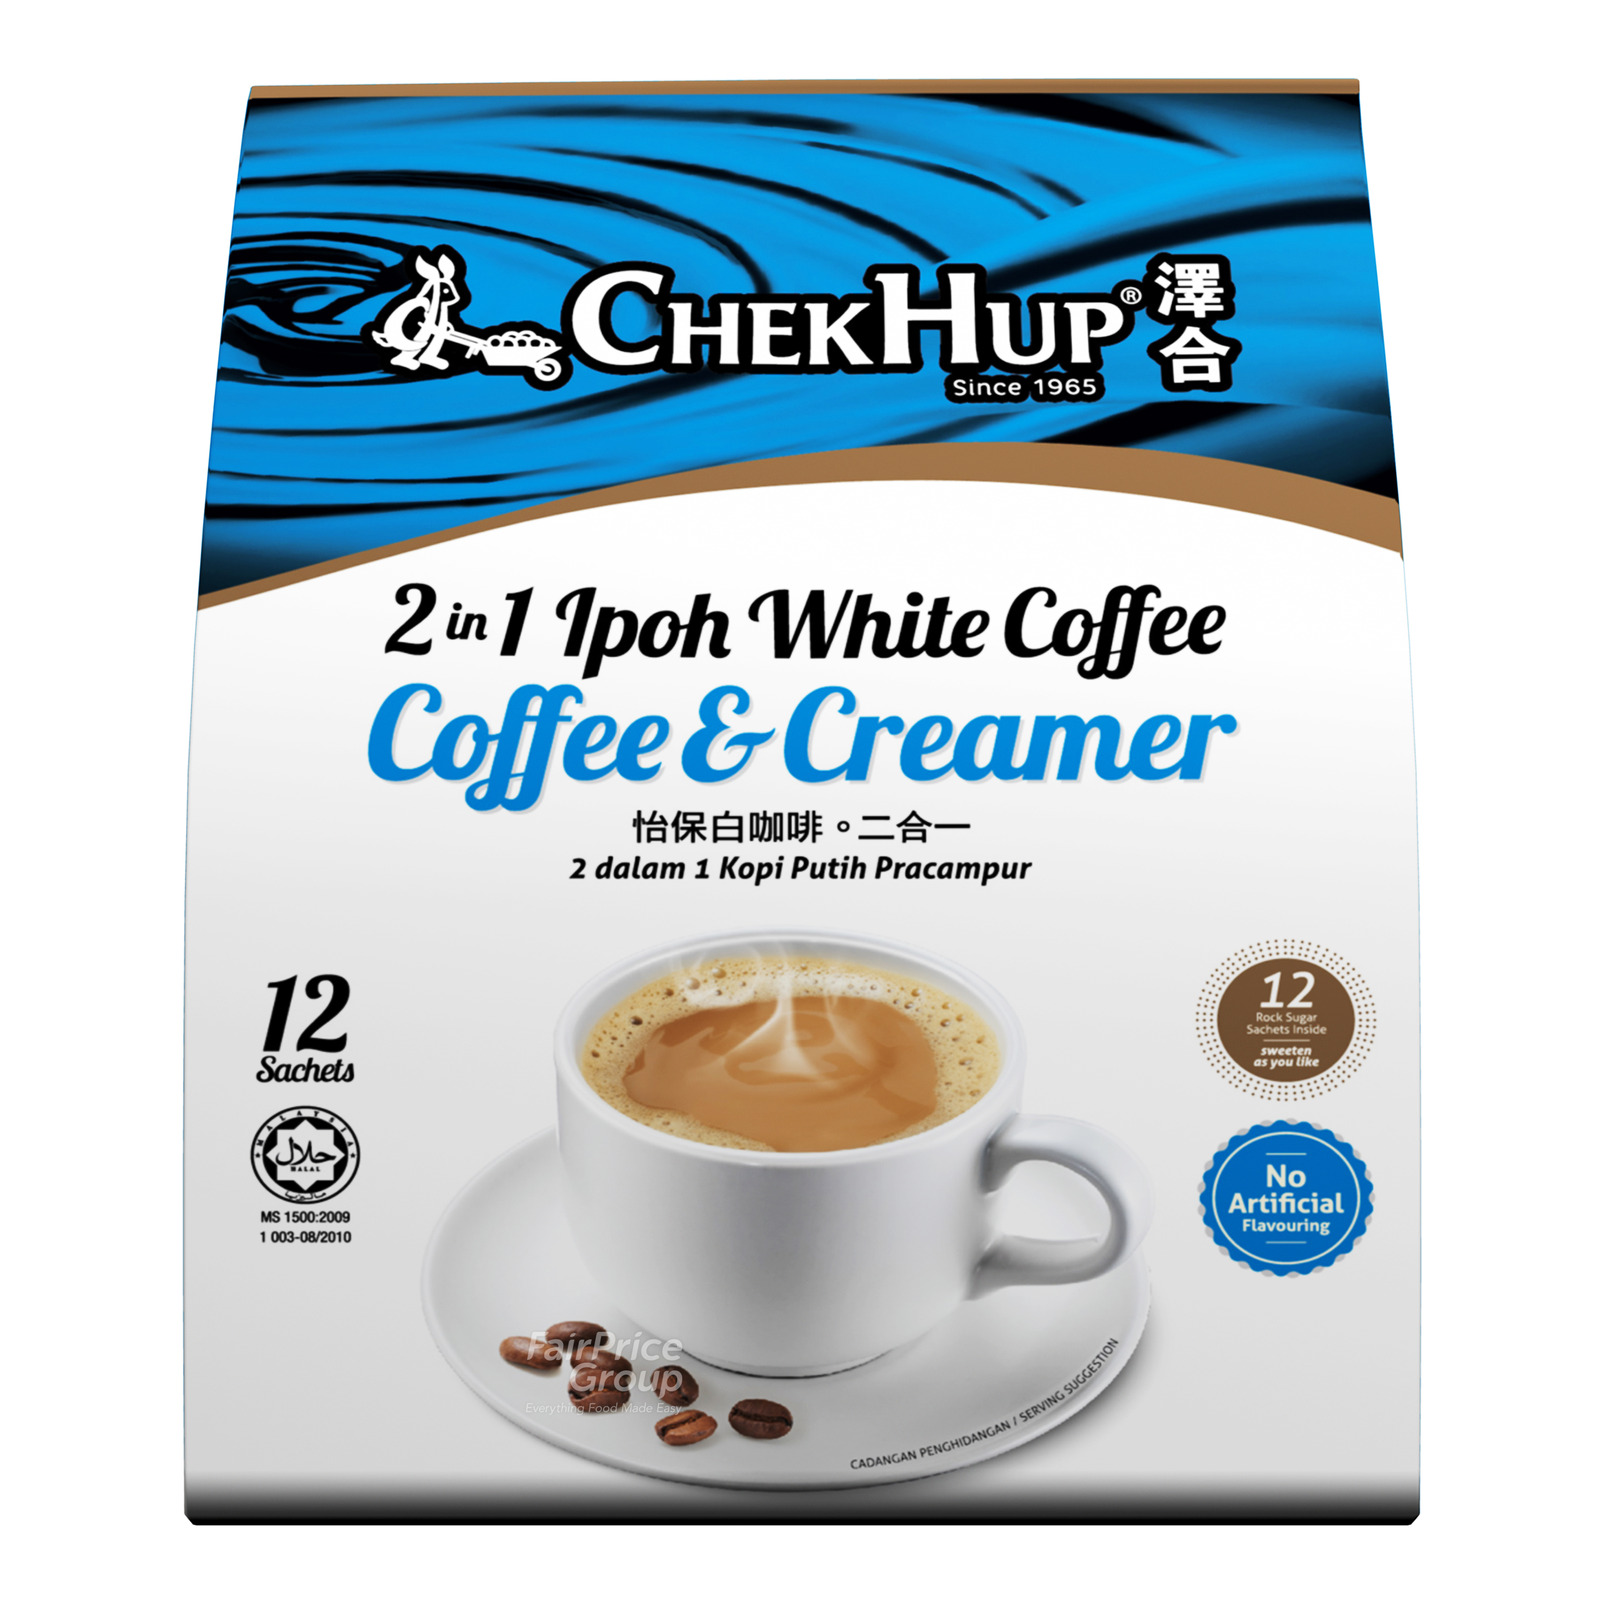 Chek Hup 2 in 1 Instant Ipoh White Coffee